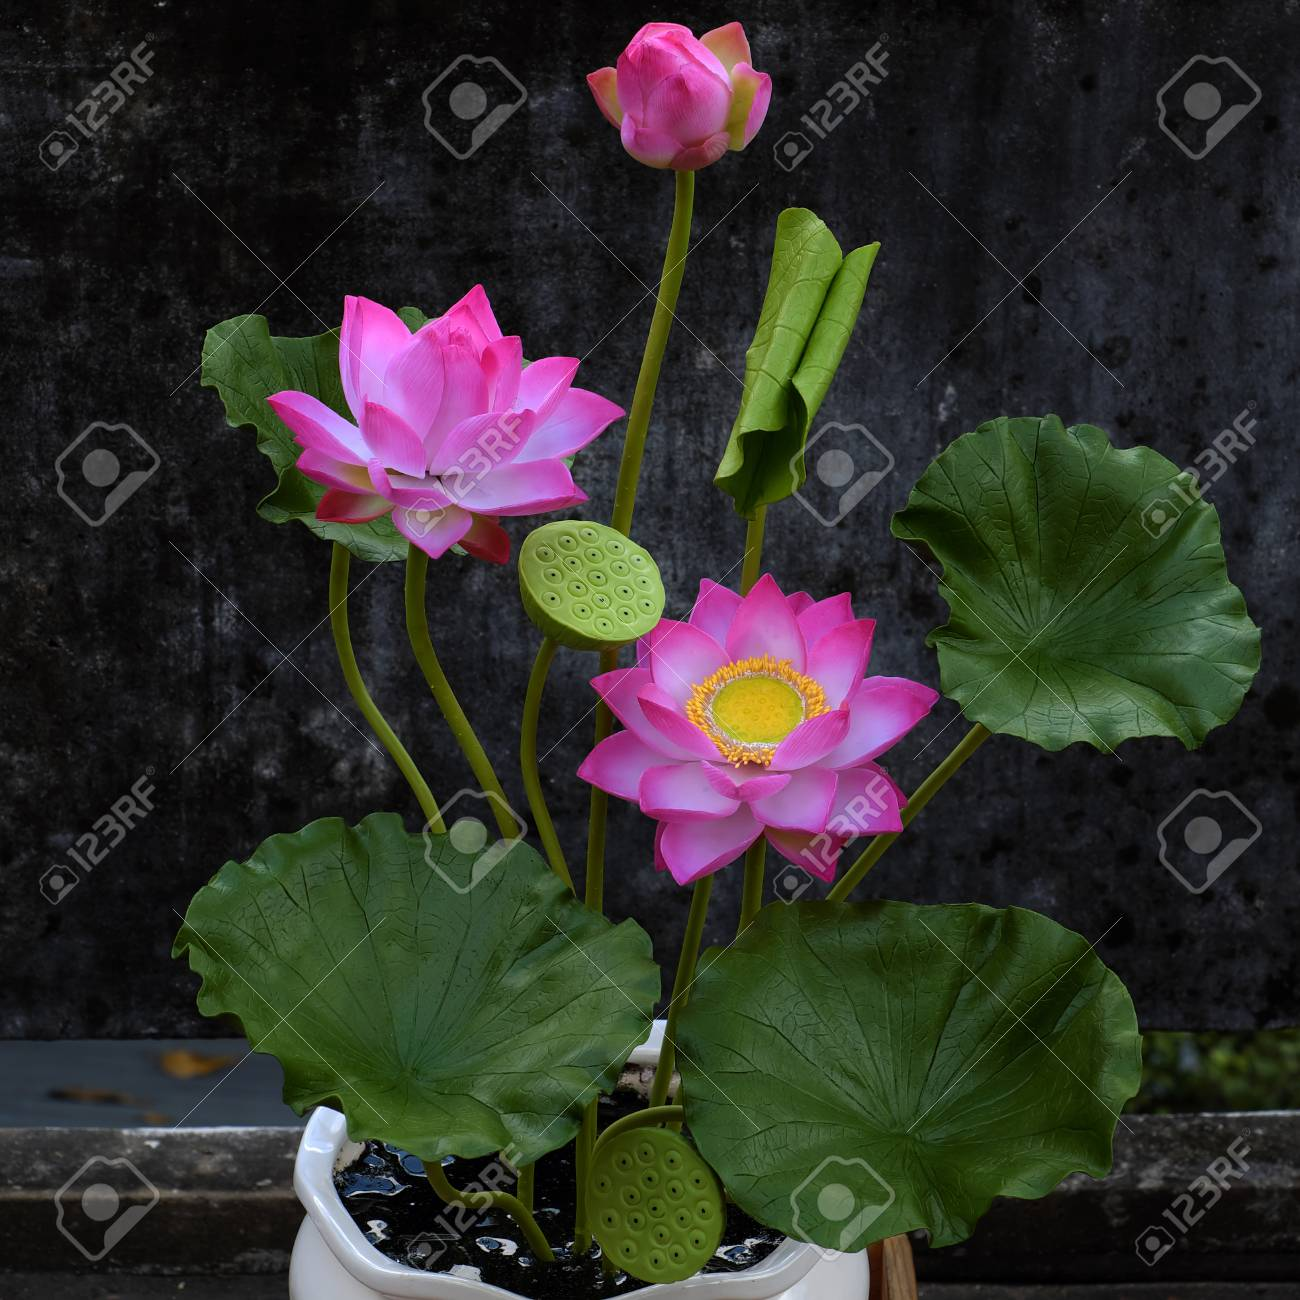 Artificial Flower Handmade Clay Lotus Flower With Green Leaf